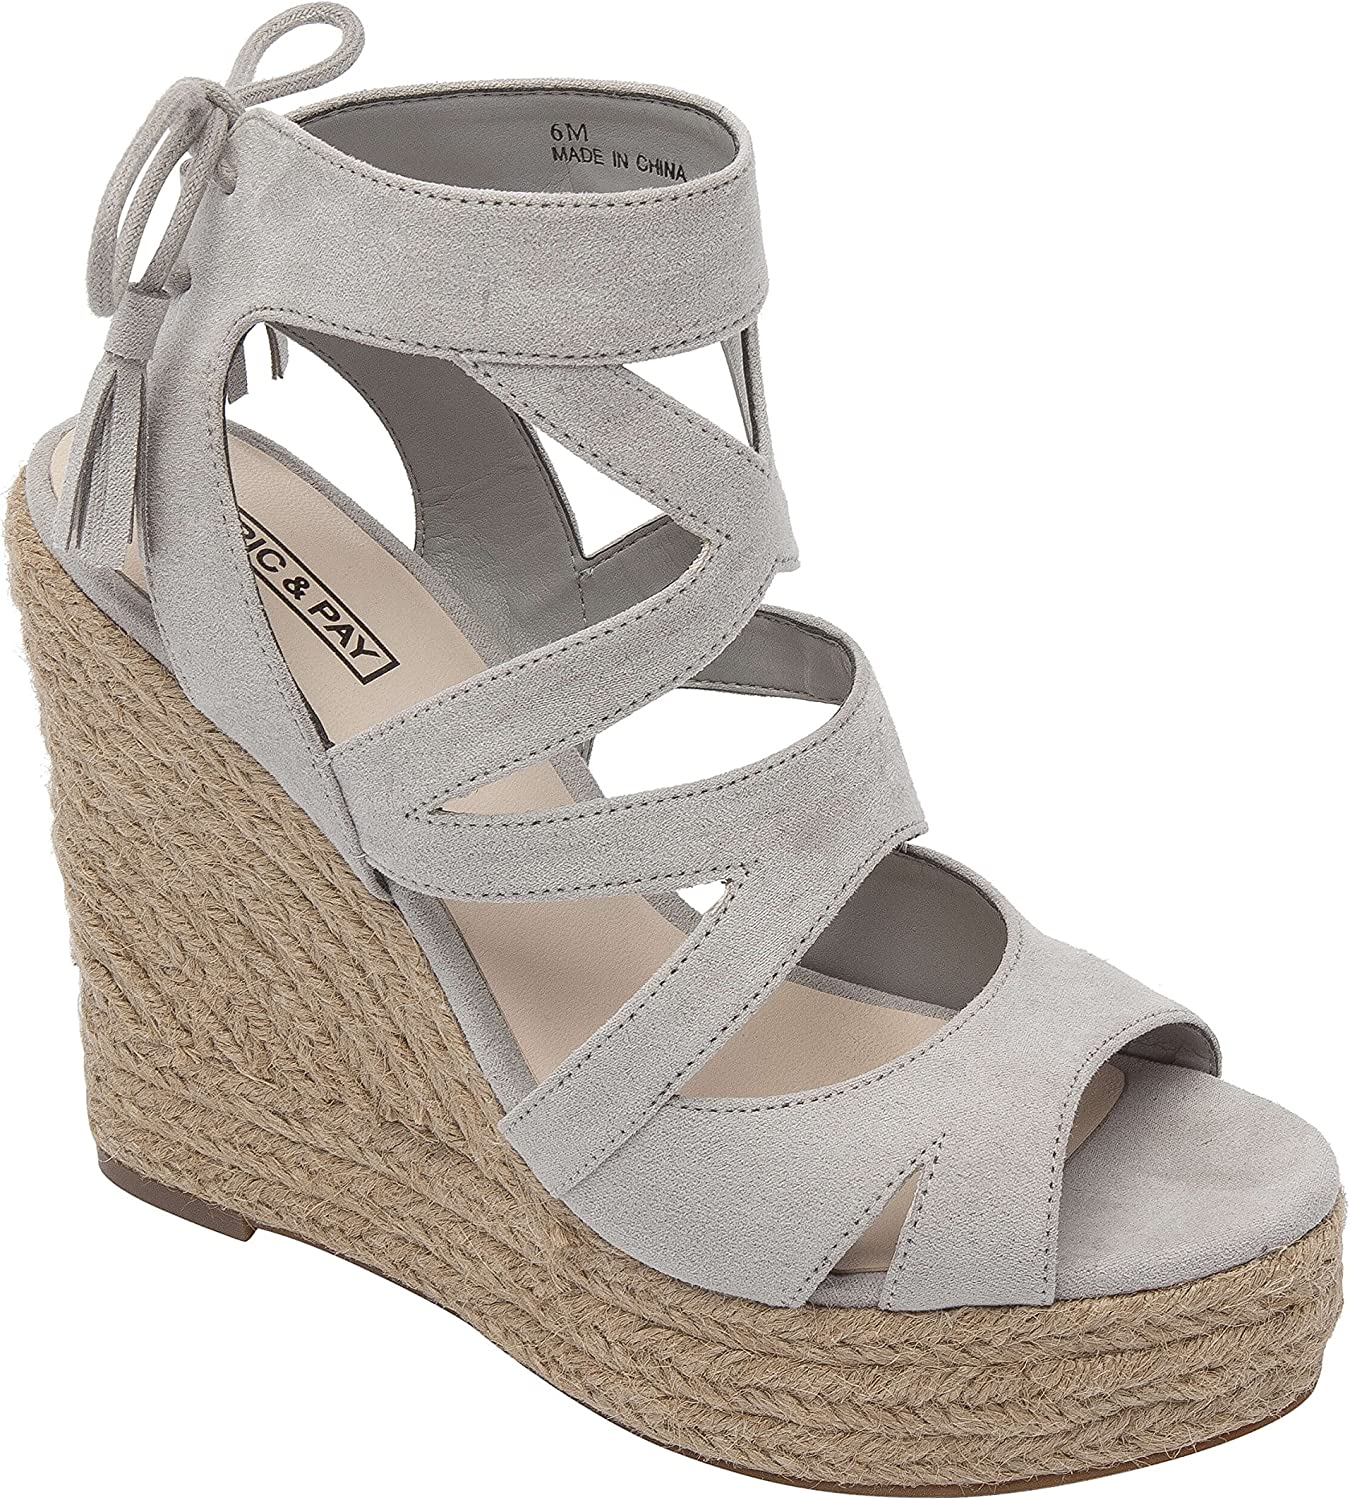 Pic & Pay Viana   Women's Comfortable High Platform Wedge Espadrille Vegan Cage Sandal Grey Vegan Suede 10M